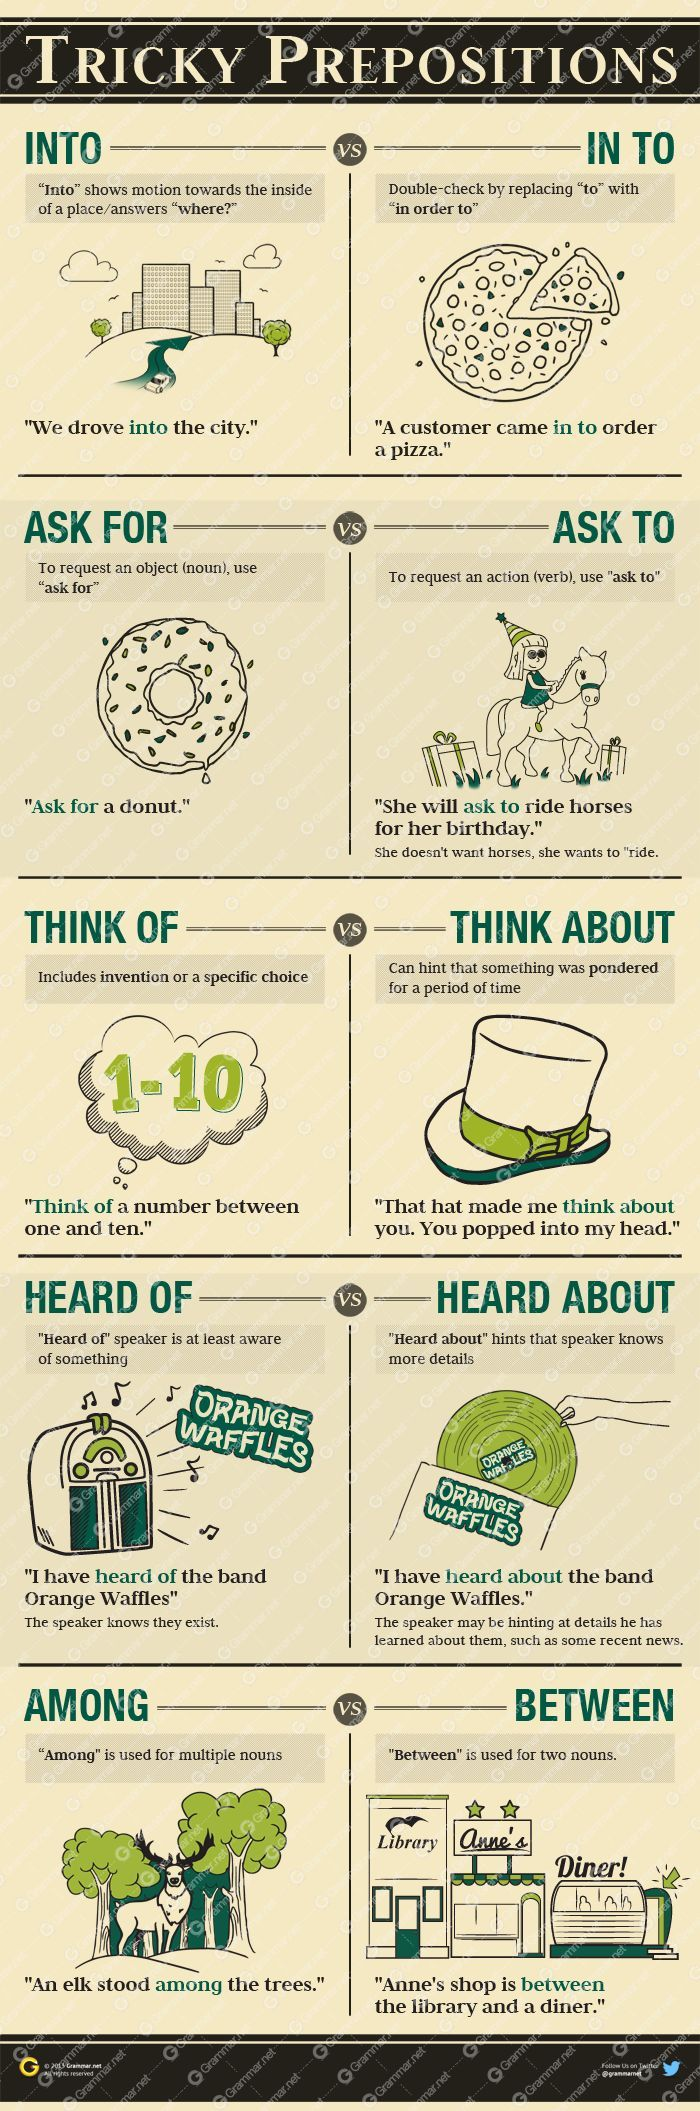 Tricky Prepositions #preposition #infographic #photo (scheduled via http://www.tailwindapp.com?utm_source=pinterest&utm_medium=twpin&utm_content=post2078791&utm_campaign=scheduler_attribution)